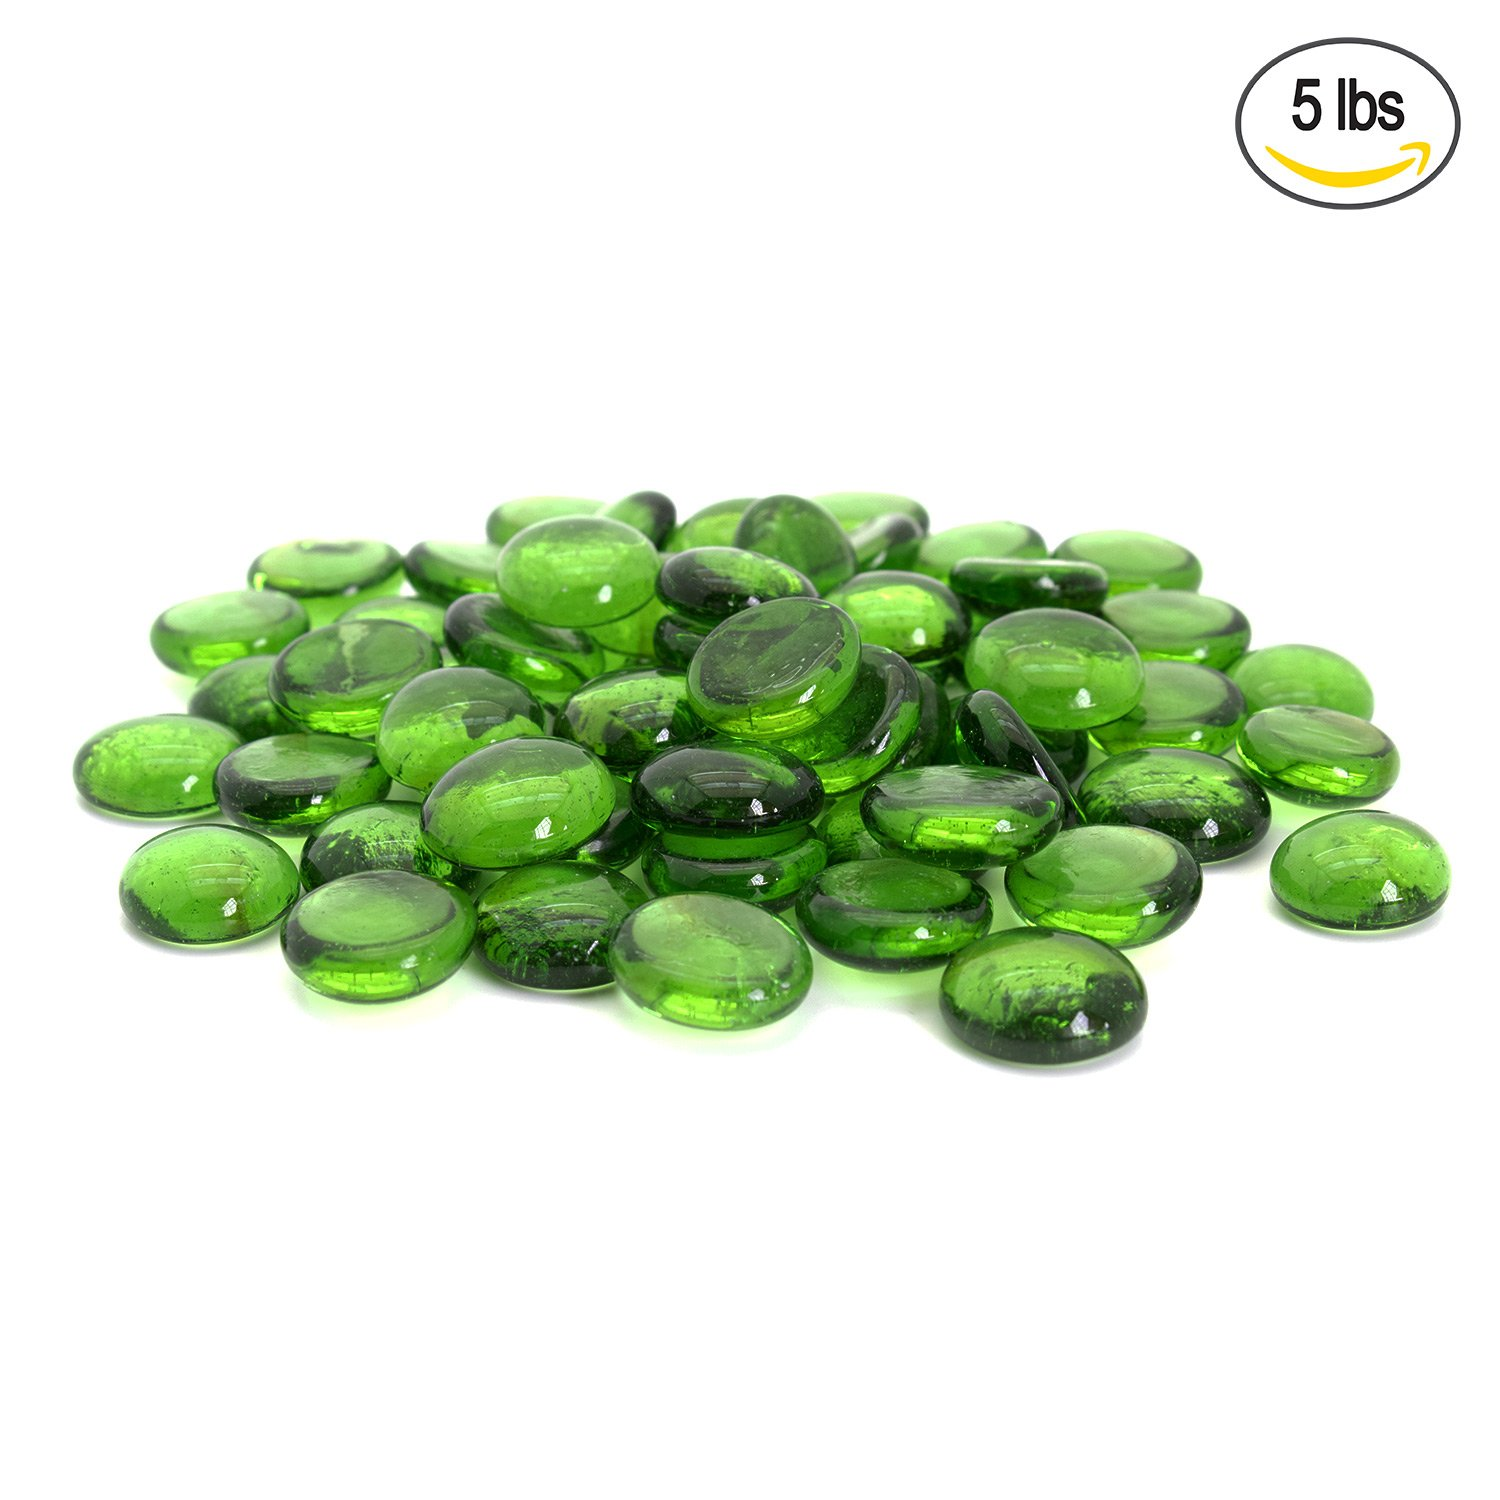 Amazon flat clear marbles pebbles 5 pound bag for vase green flat marbles pebbles glass gems for vase fillers party table scatter reviewsmspy